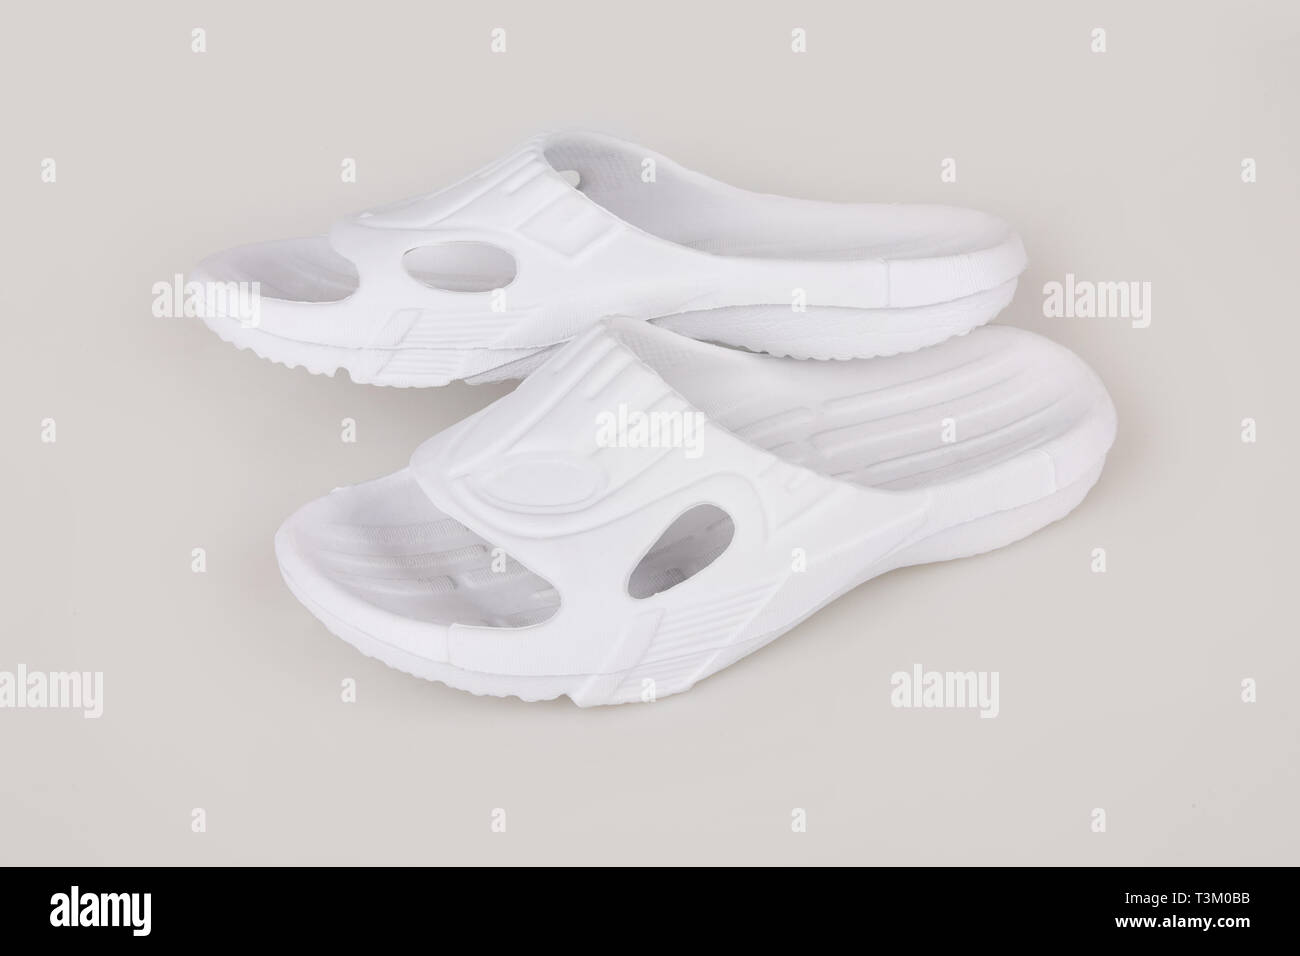 Baby Hotel Slippers Pair Of Blank White Home Slippers Top And Bottom View Bed